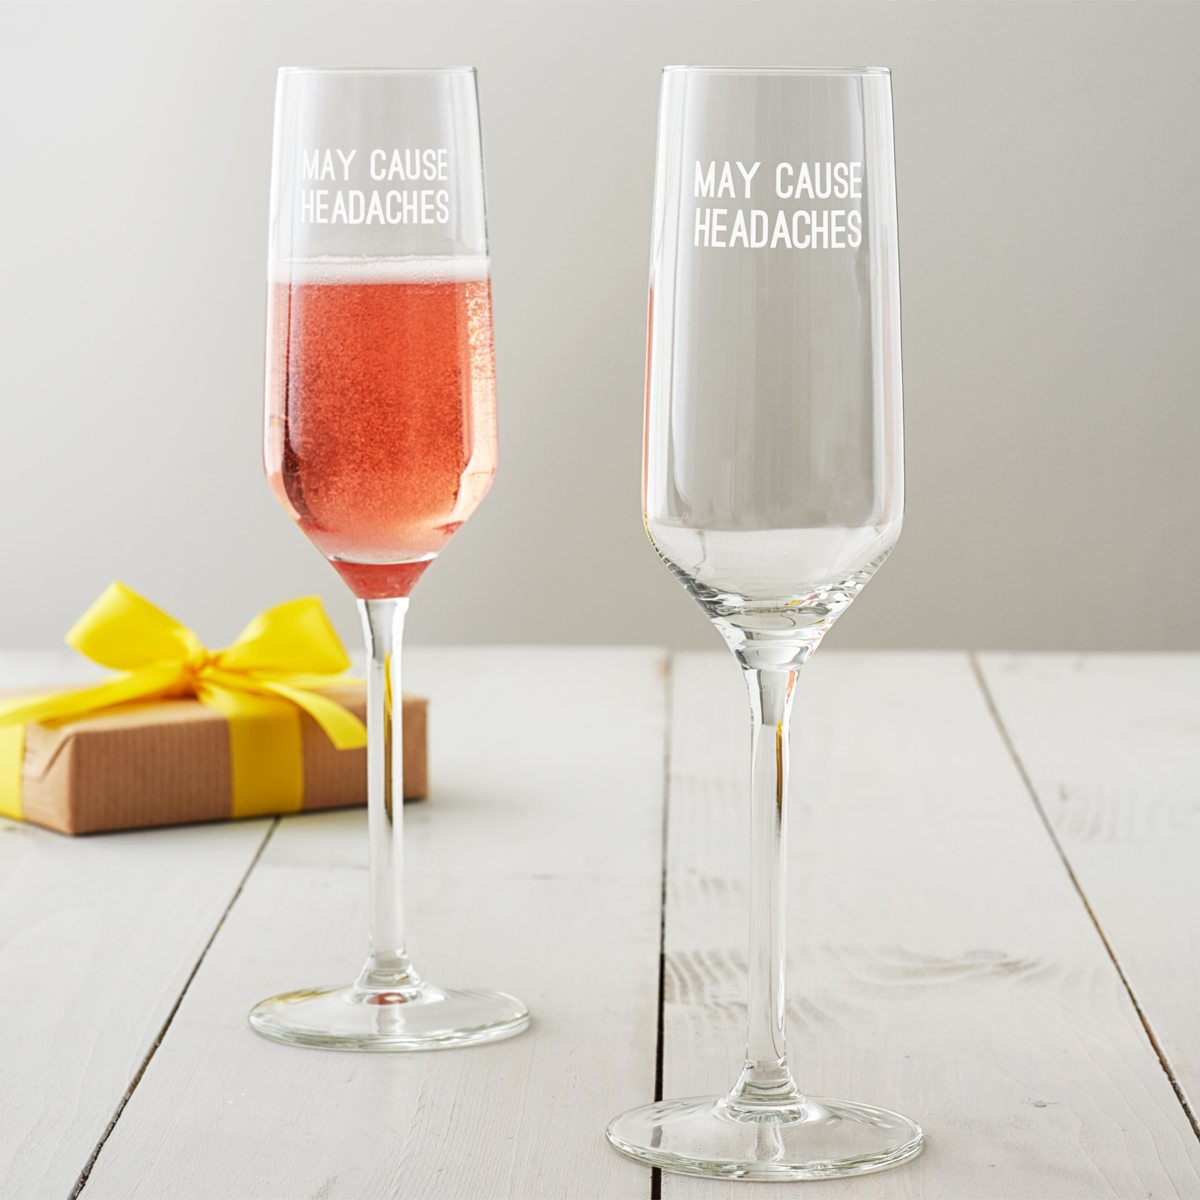 'May Cause Headaches' Champagne Flute